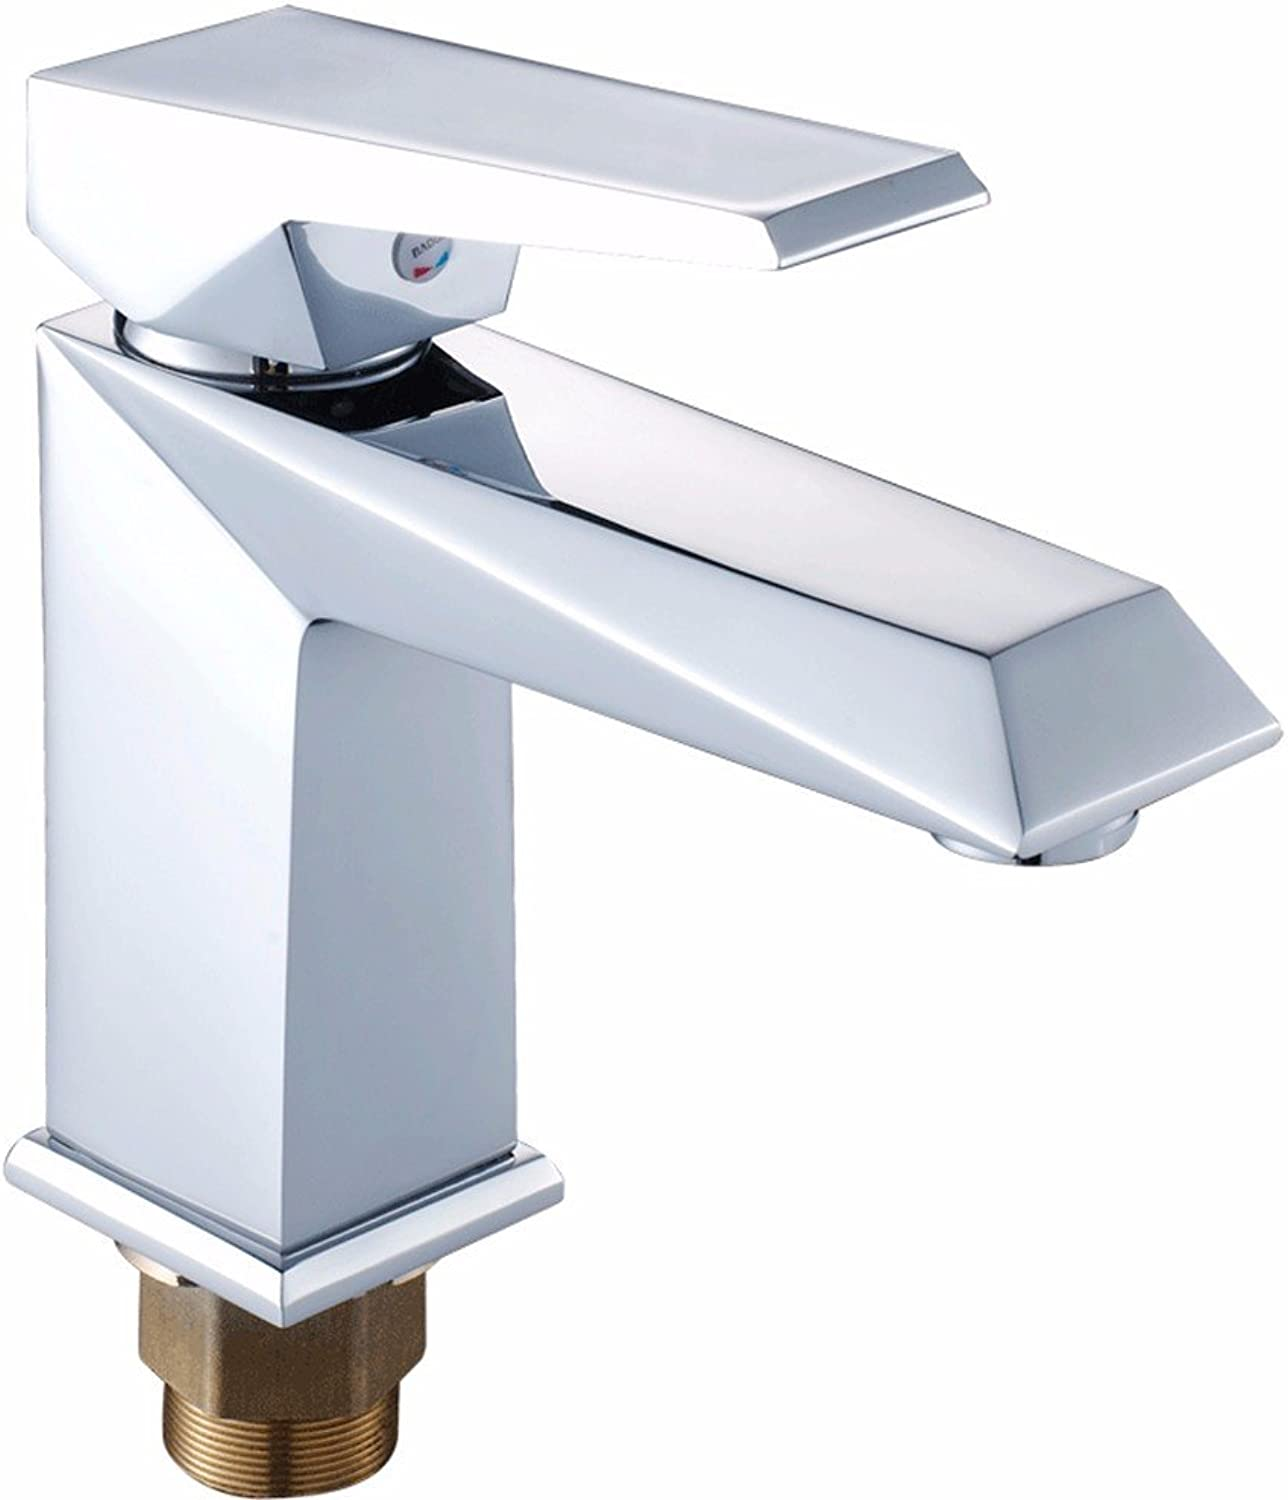 IJIAHOMIE Style of Bathroom Sink Taps, Bathroom Faucets,Waterfall Basin Sink Mixer Tap Modern,Silver,hot and Cold Water,Ceramic Valve,Single Hole Single Handle,